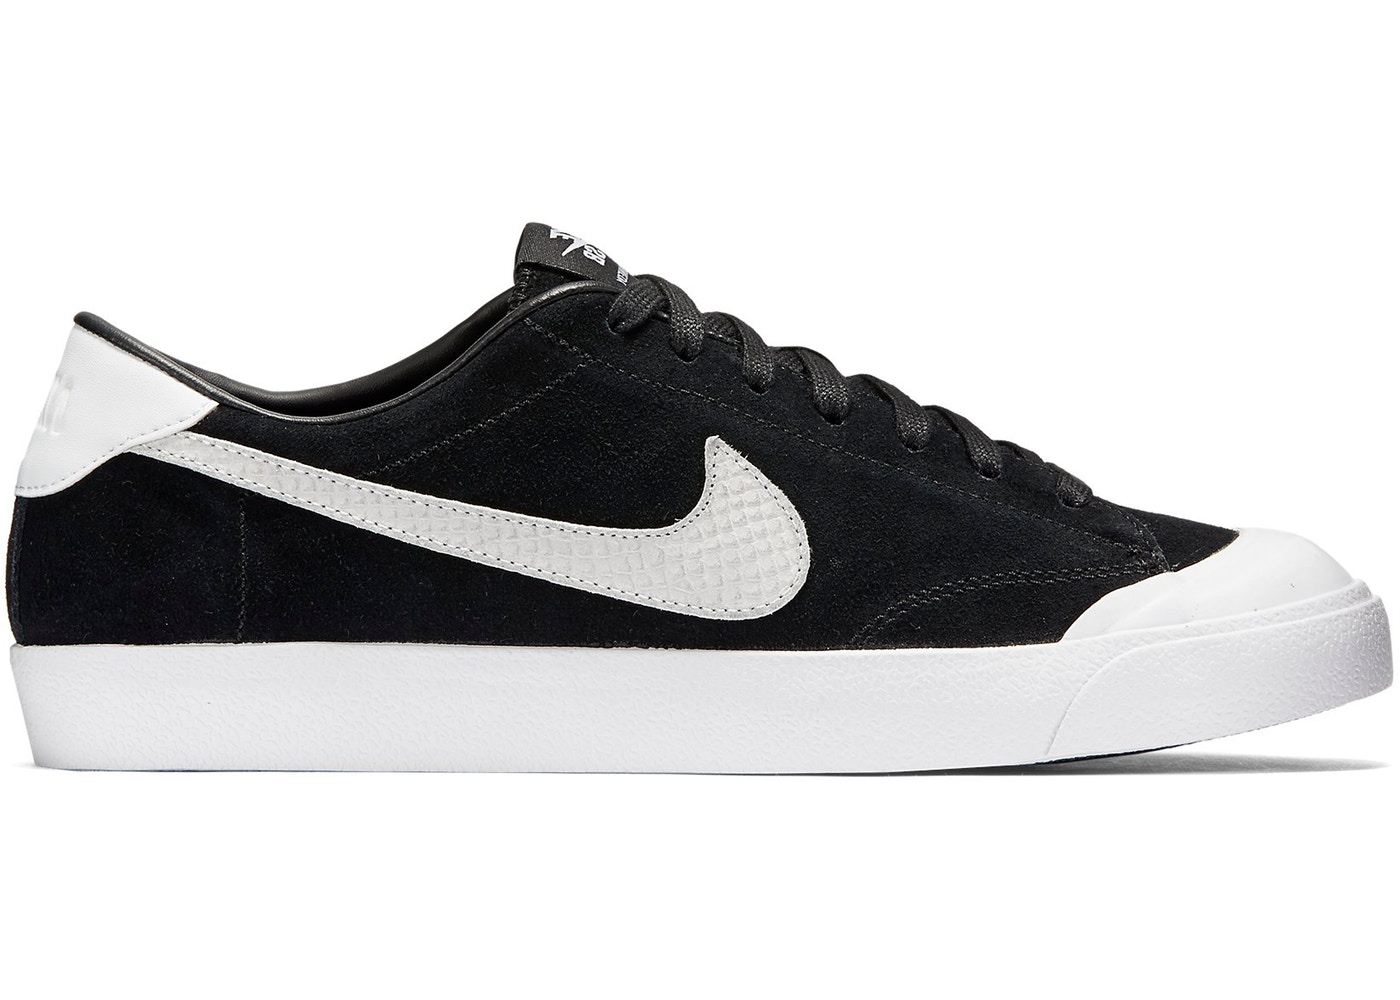 7df792f8f6c73 Nike SB Zoom All Court Cory Kennedy - 811252-001